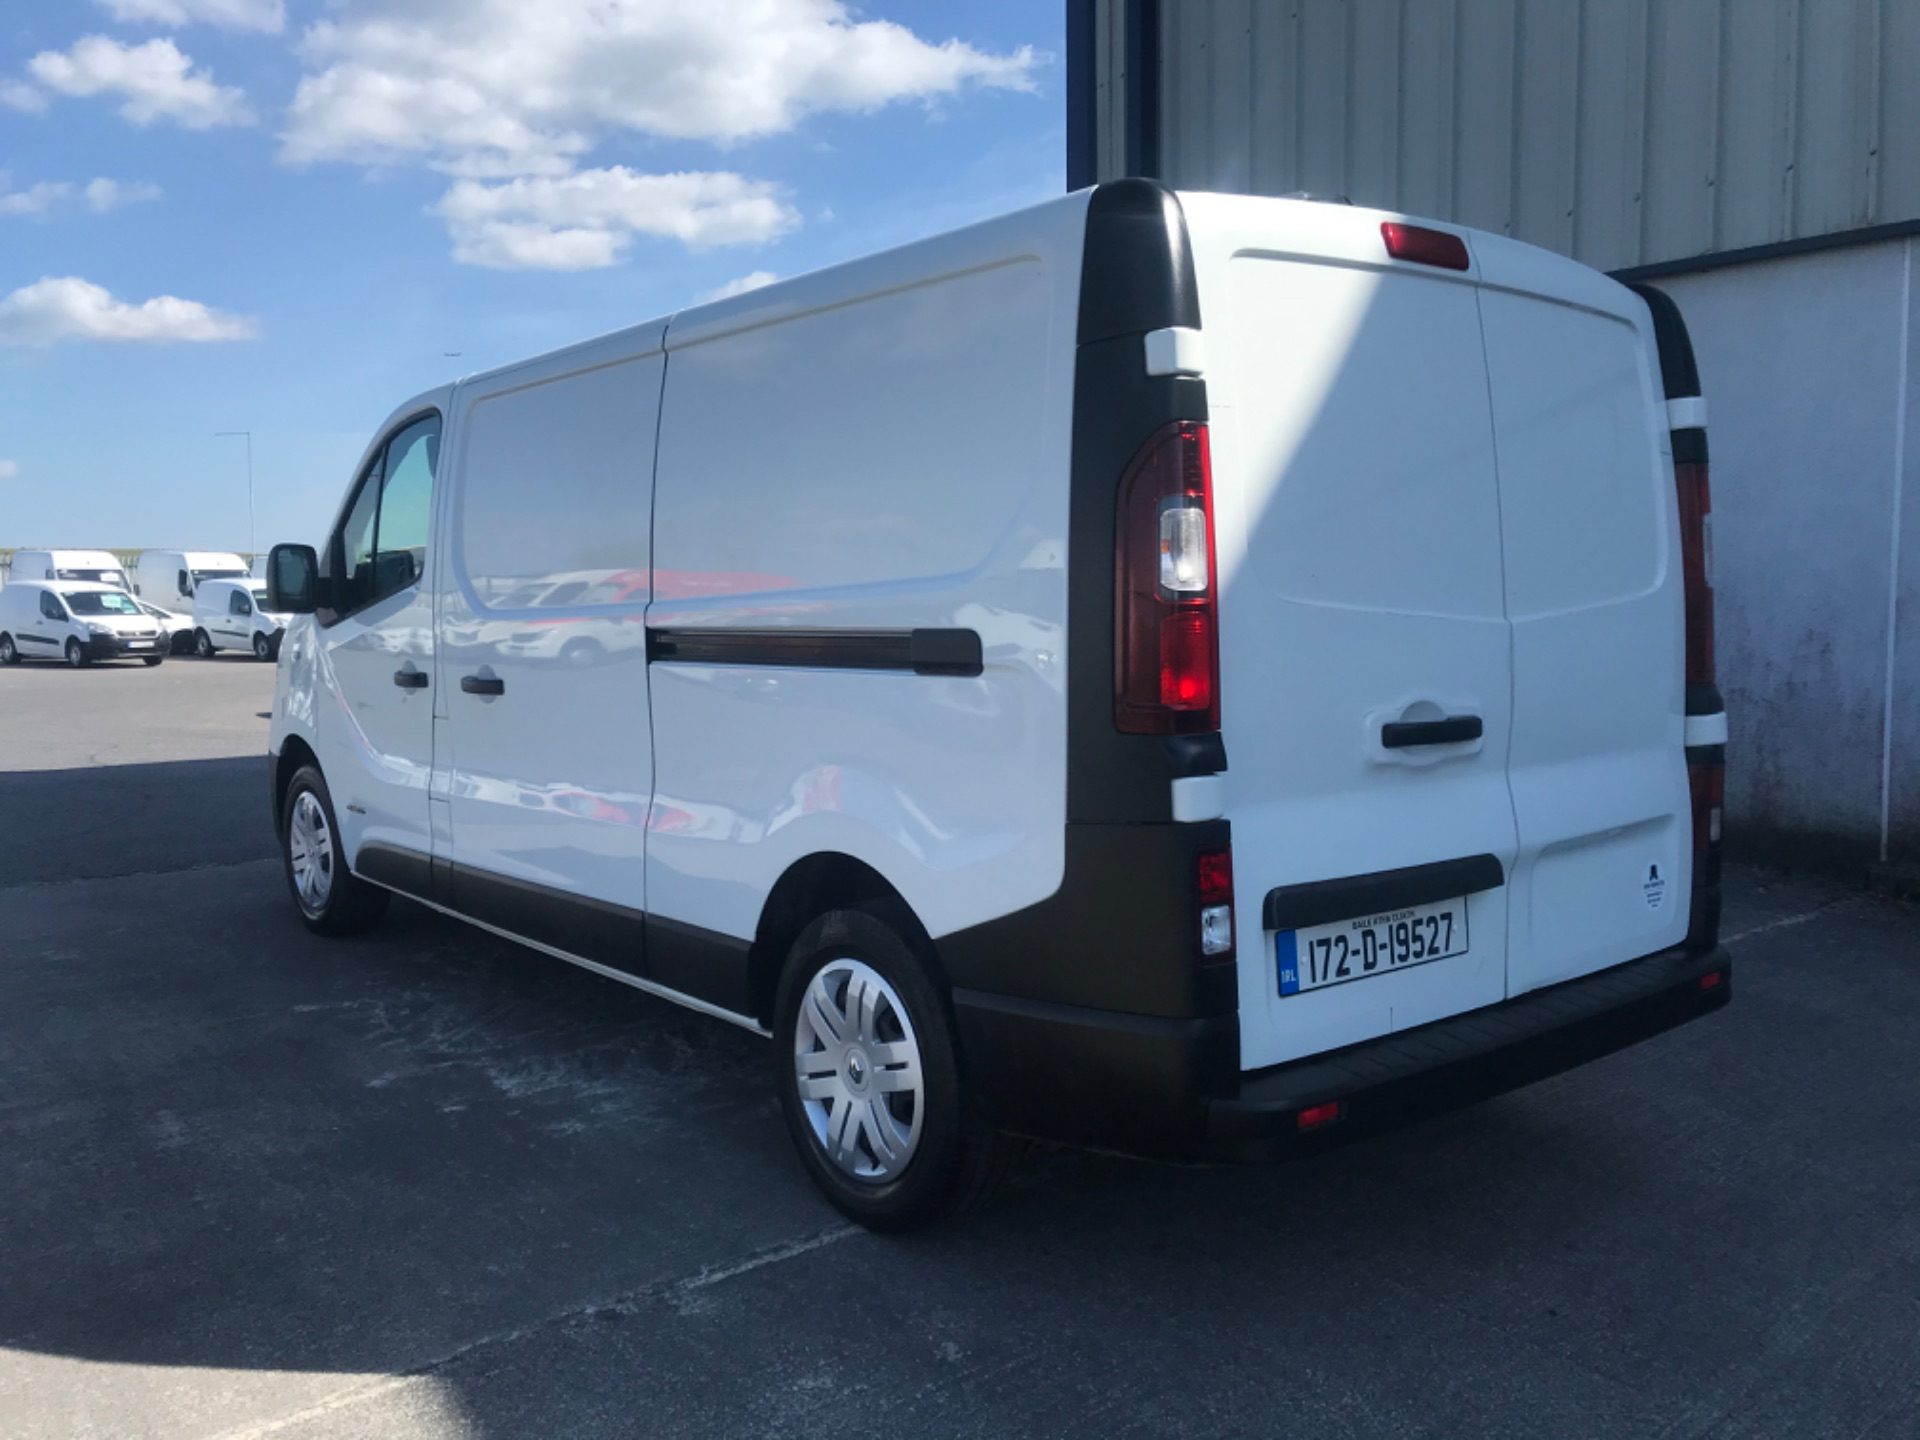 2017 Renault Trafic LL29 DCI 120 Business 3DR (172D19527) Image 7